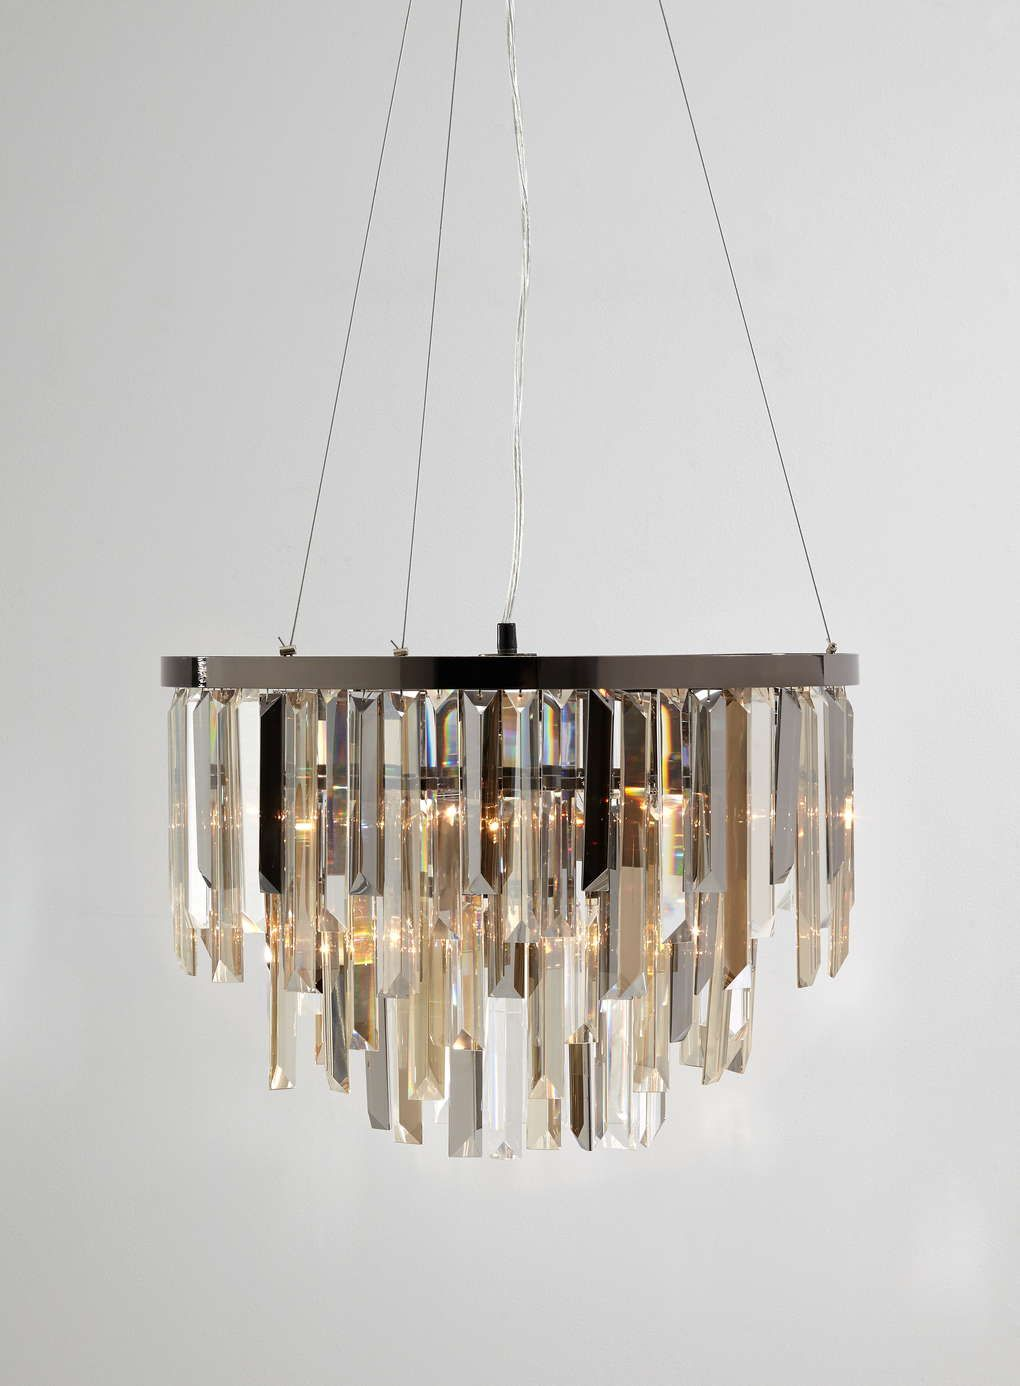 Bathroom Chandeliers Bhs photo 1 of mink valera chandelier pendant ceiling light | d'can